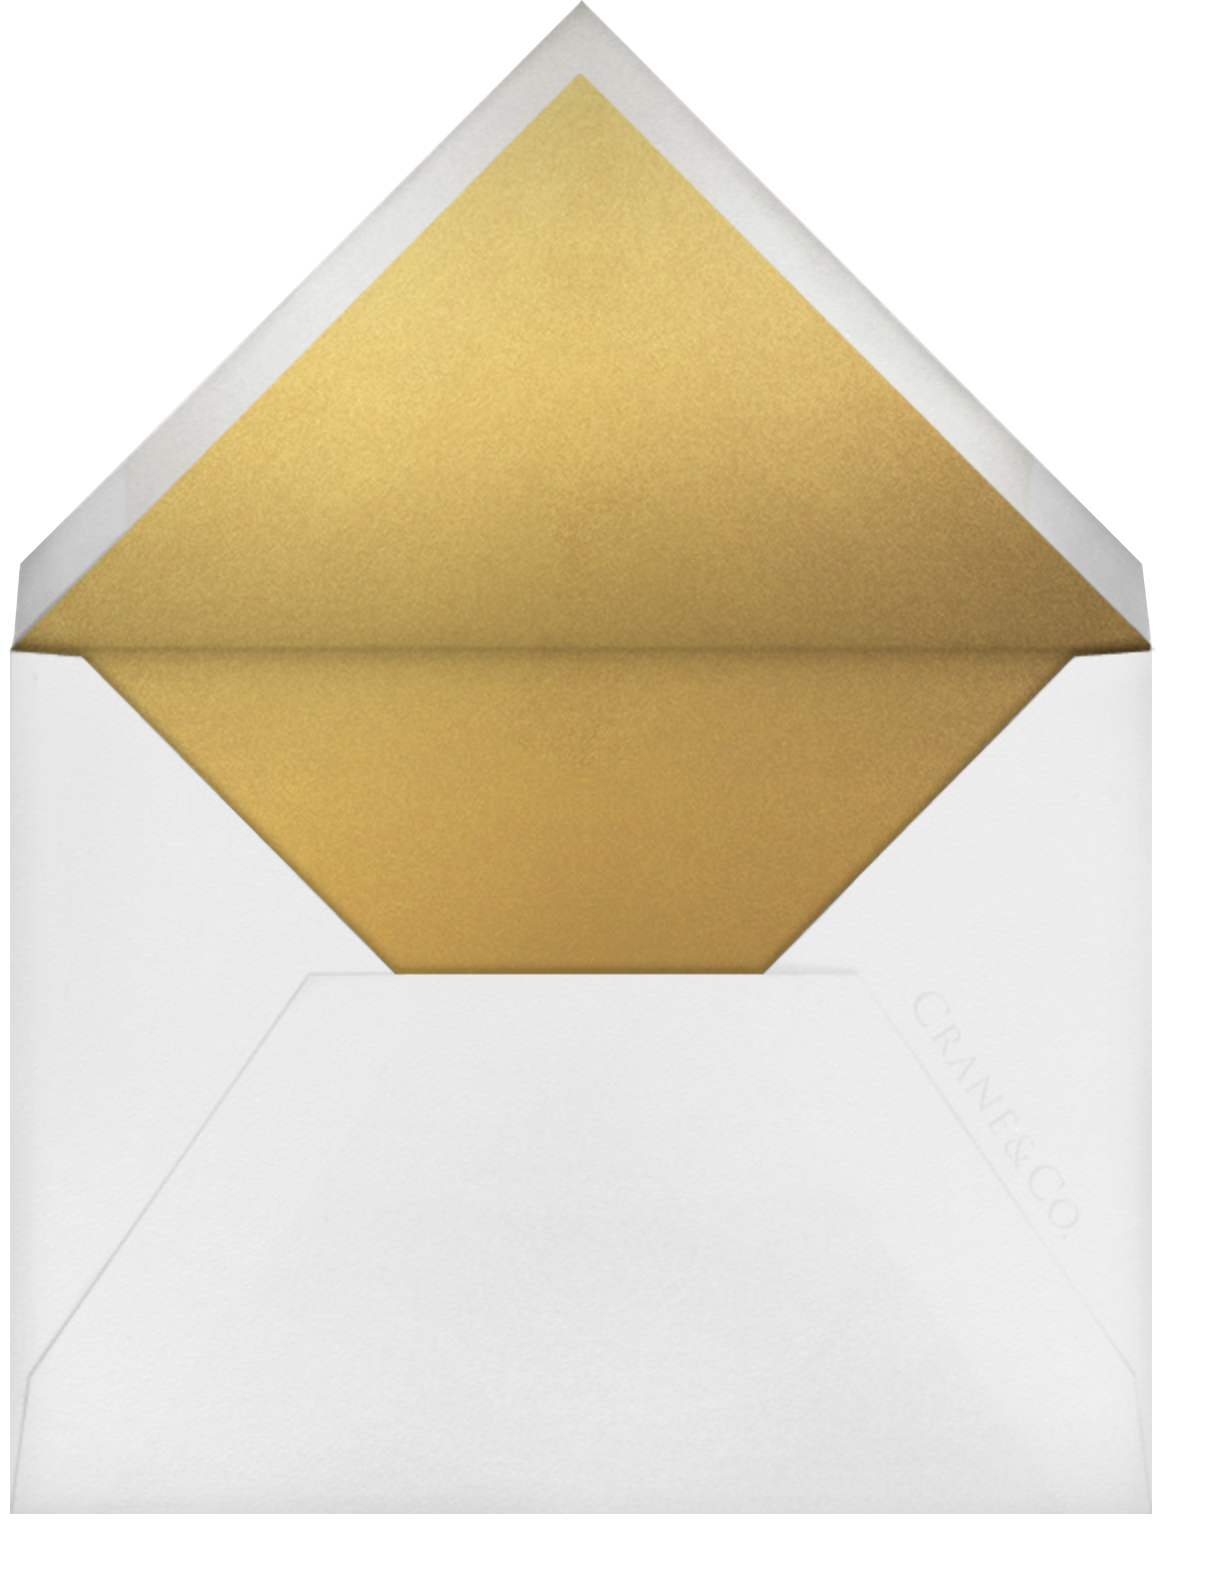 Marchmain (Save the Date) - Gold - Paperless Post - Save the date - envelope back